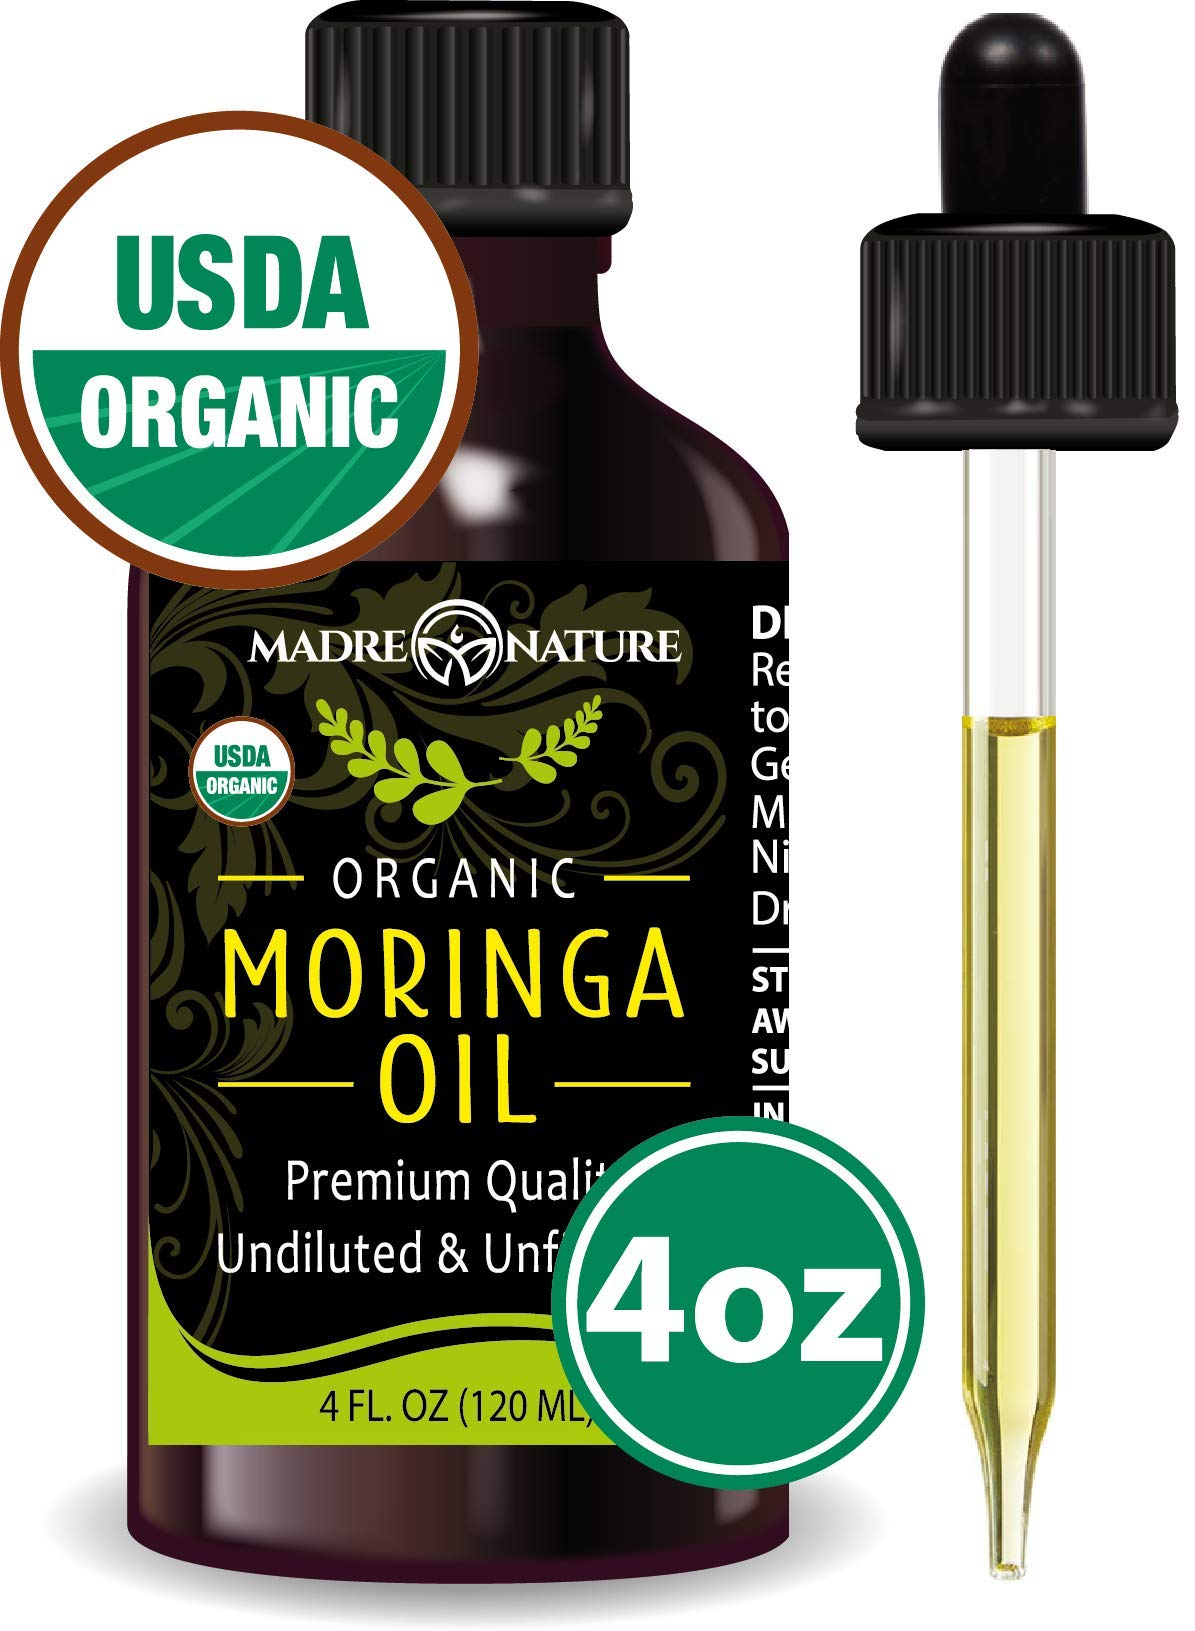 USDA Organic Moringa Oil - Highest Quality, Cold-Pressed, Unrefined, non-GMO - 4 Ounce Glass Bottle with Dropper - For Face, Body, and Hair - Food Grade for Oral Consumption by Madre Nature